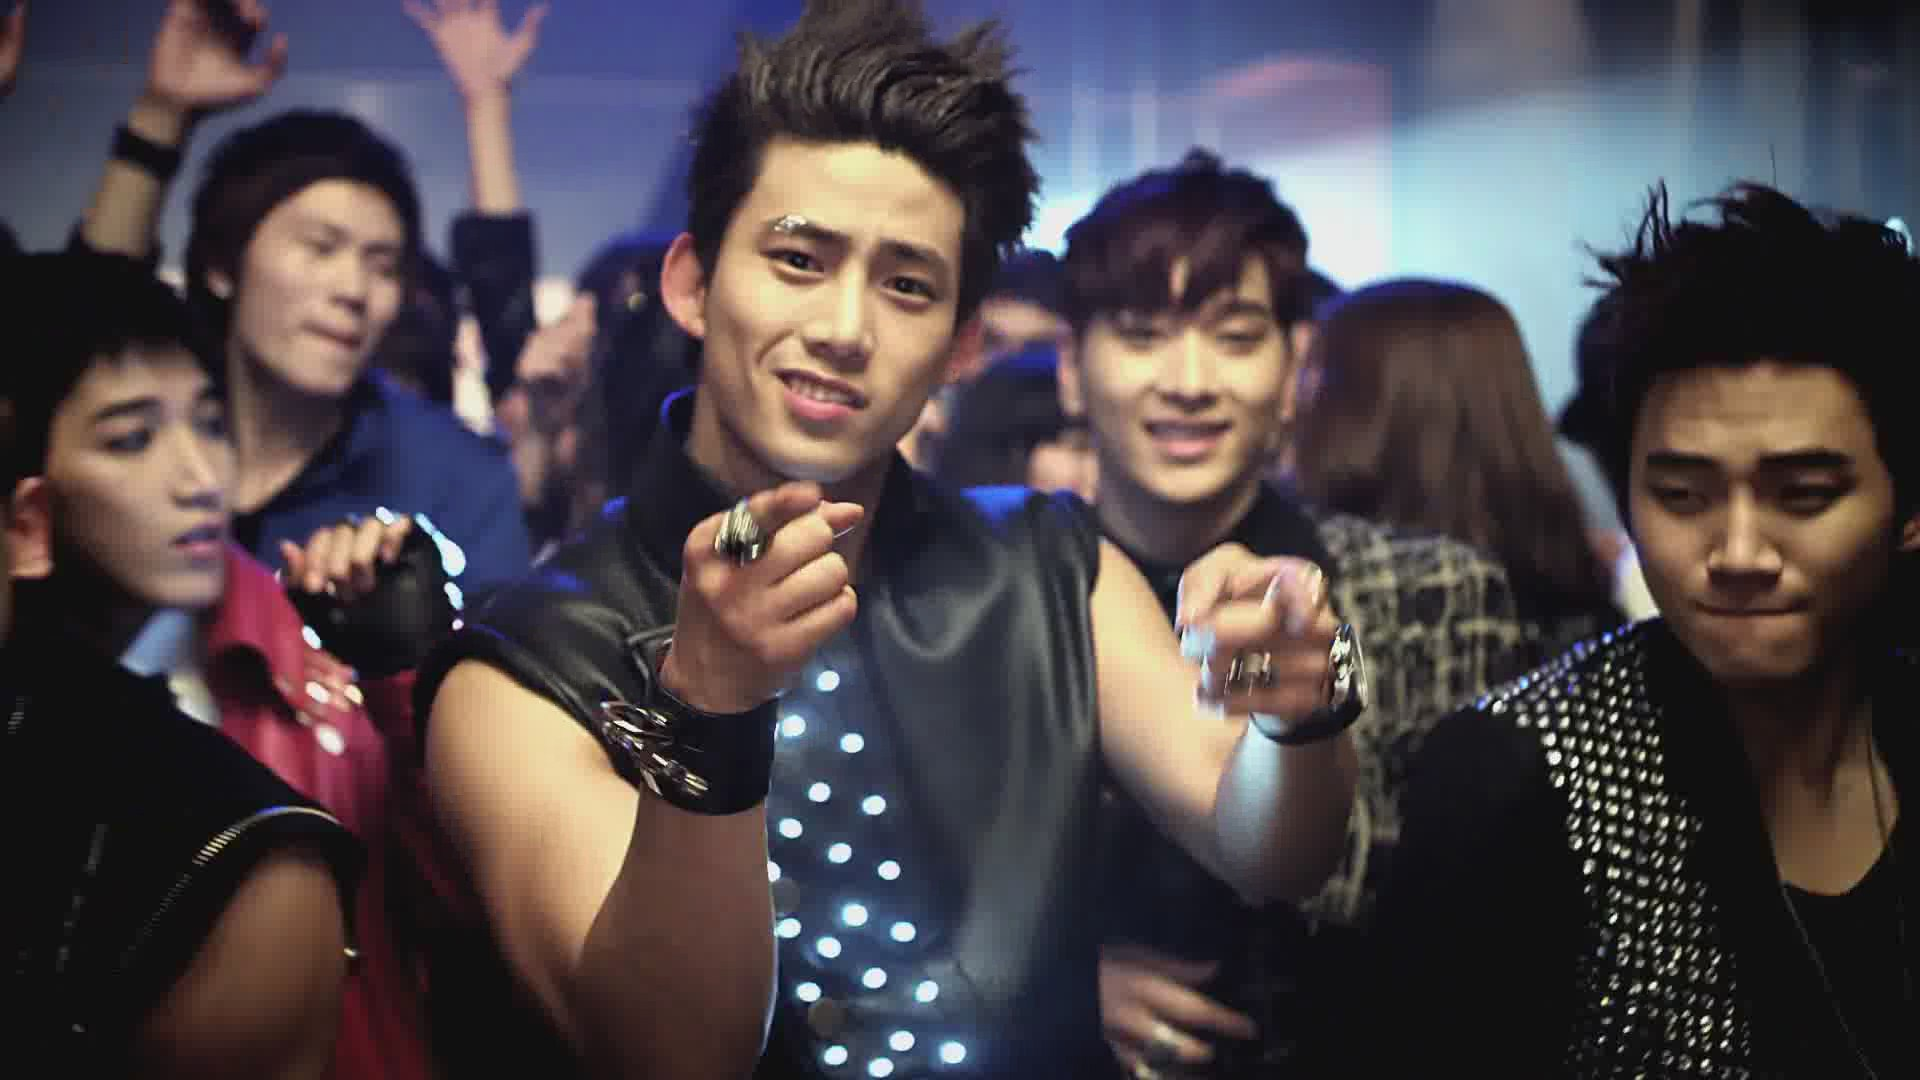 Taecyeon Hands Up MV - taecyeon 2pm Image (27831113) - fanpop